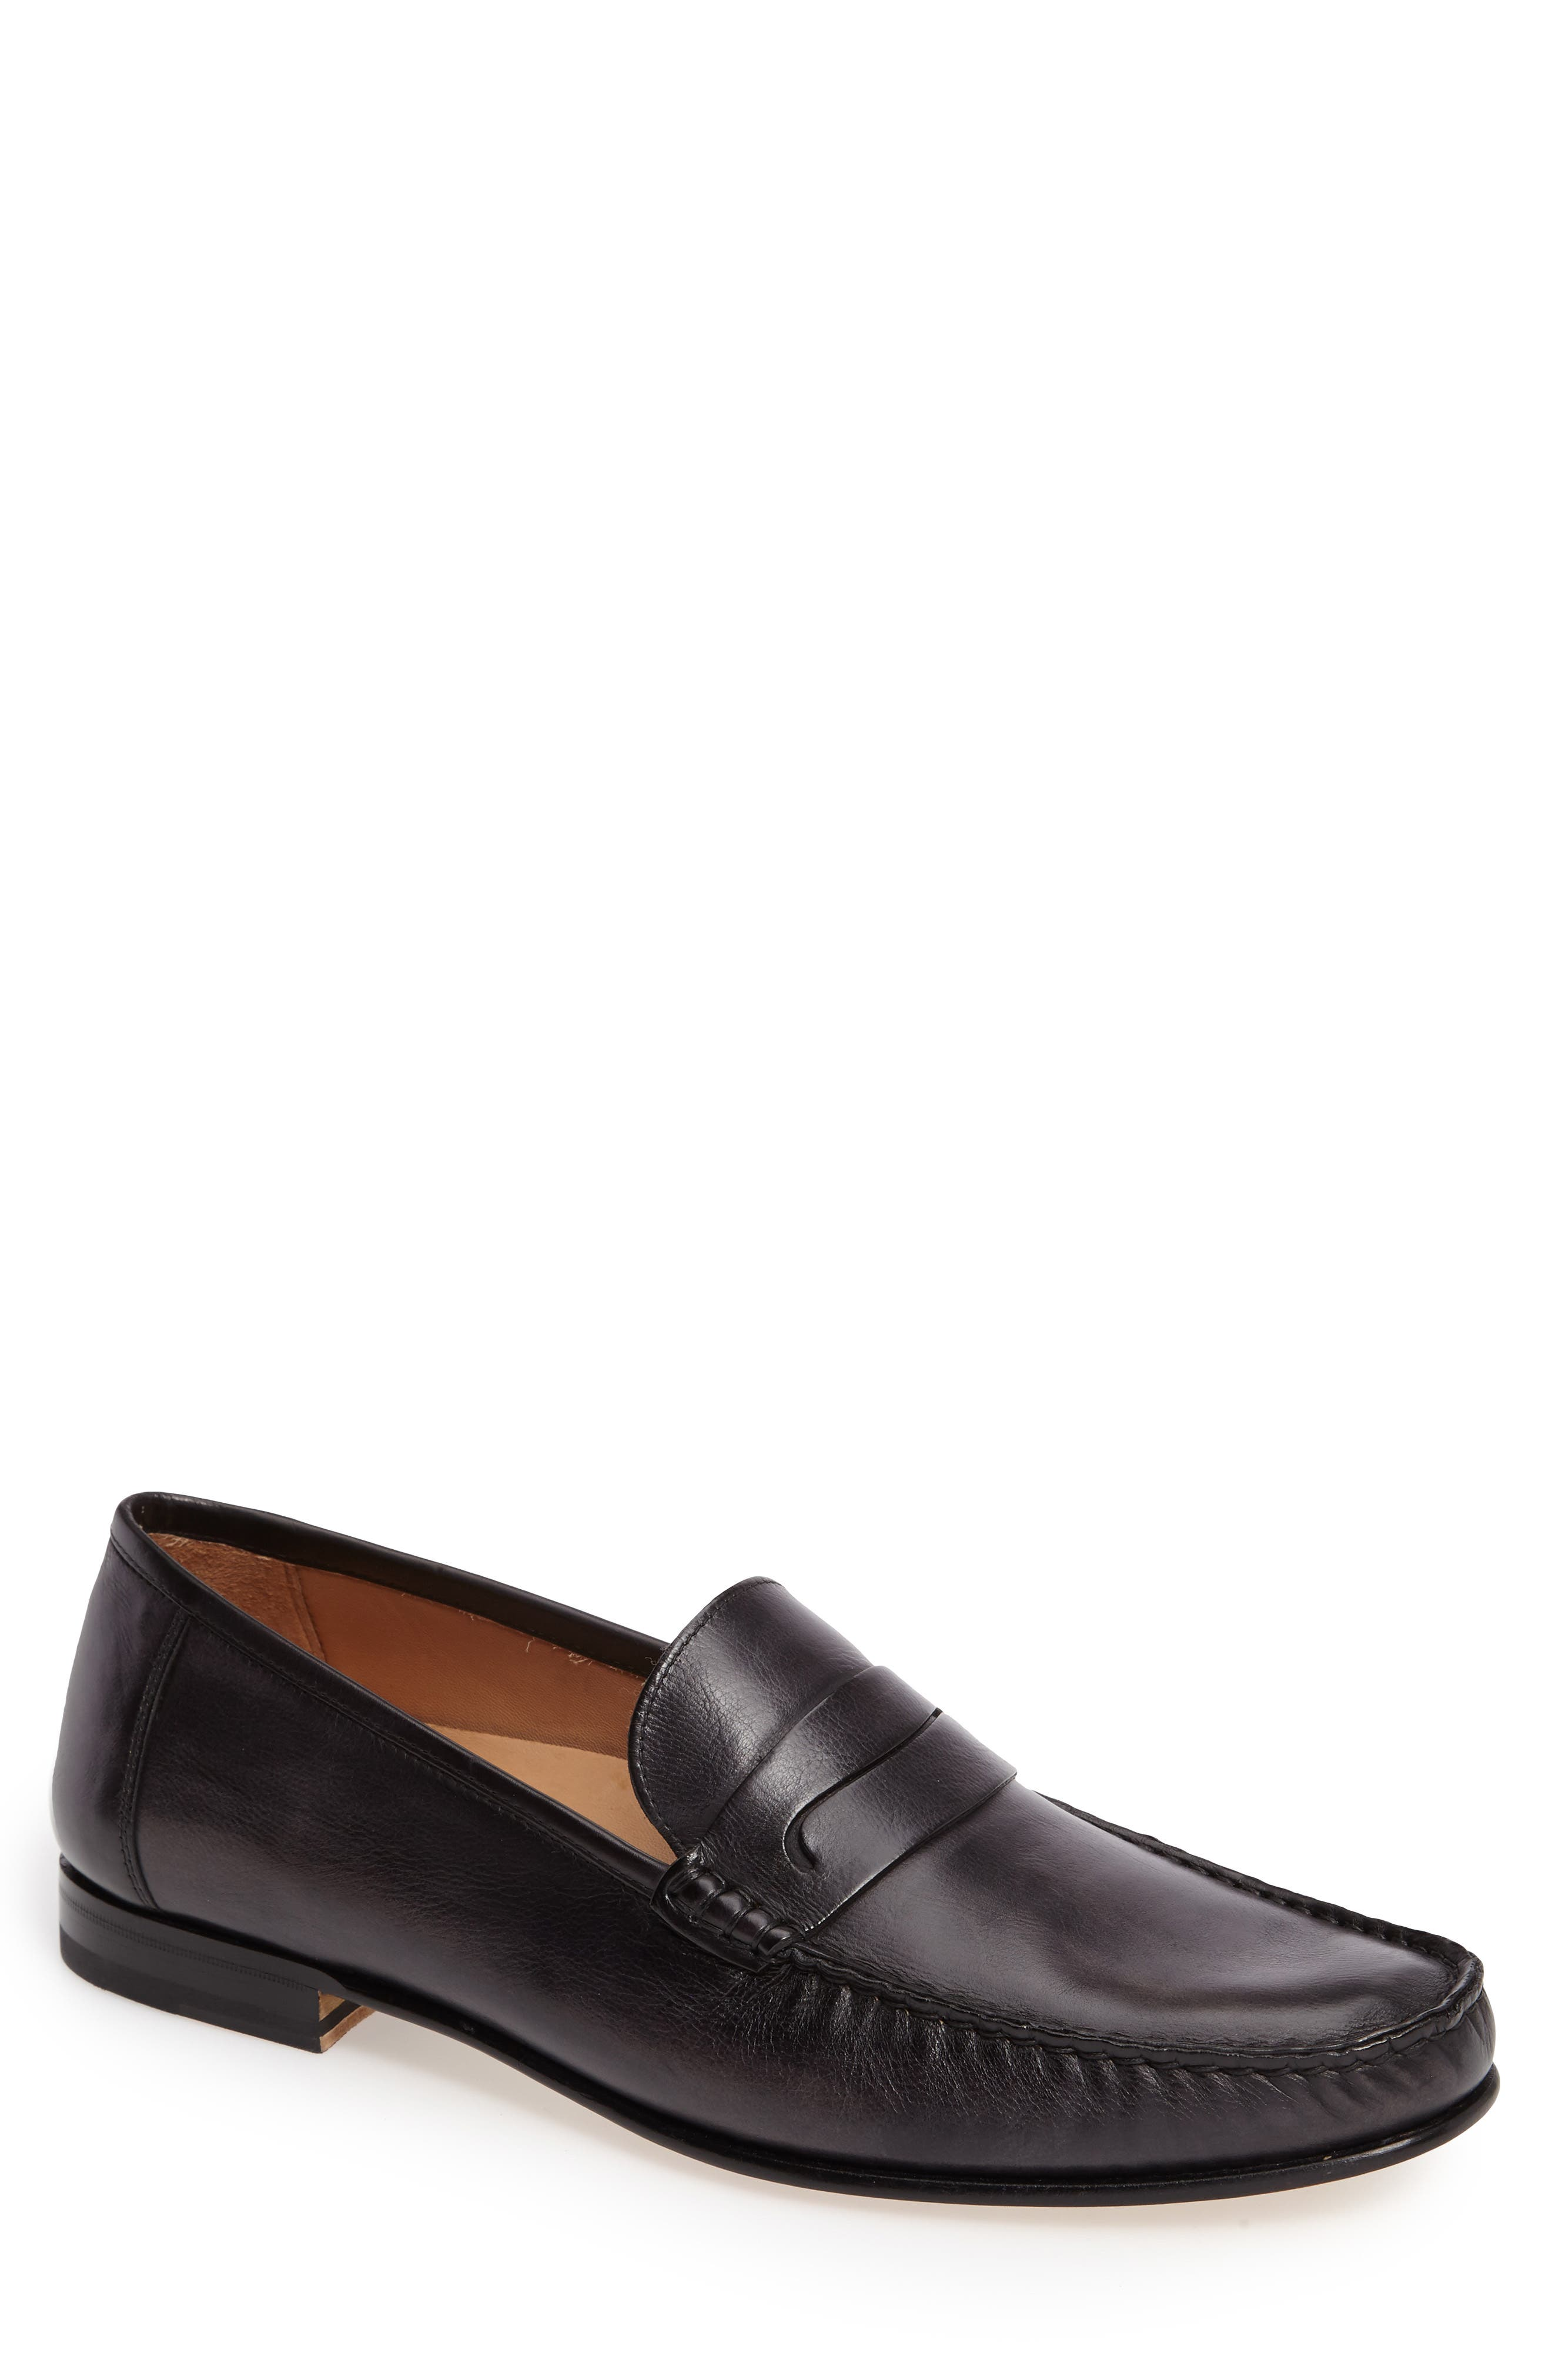 Pauli Classic Penny Loafer,                             Main thumbnail 1, color,                             Black Leather